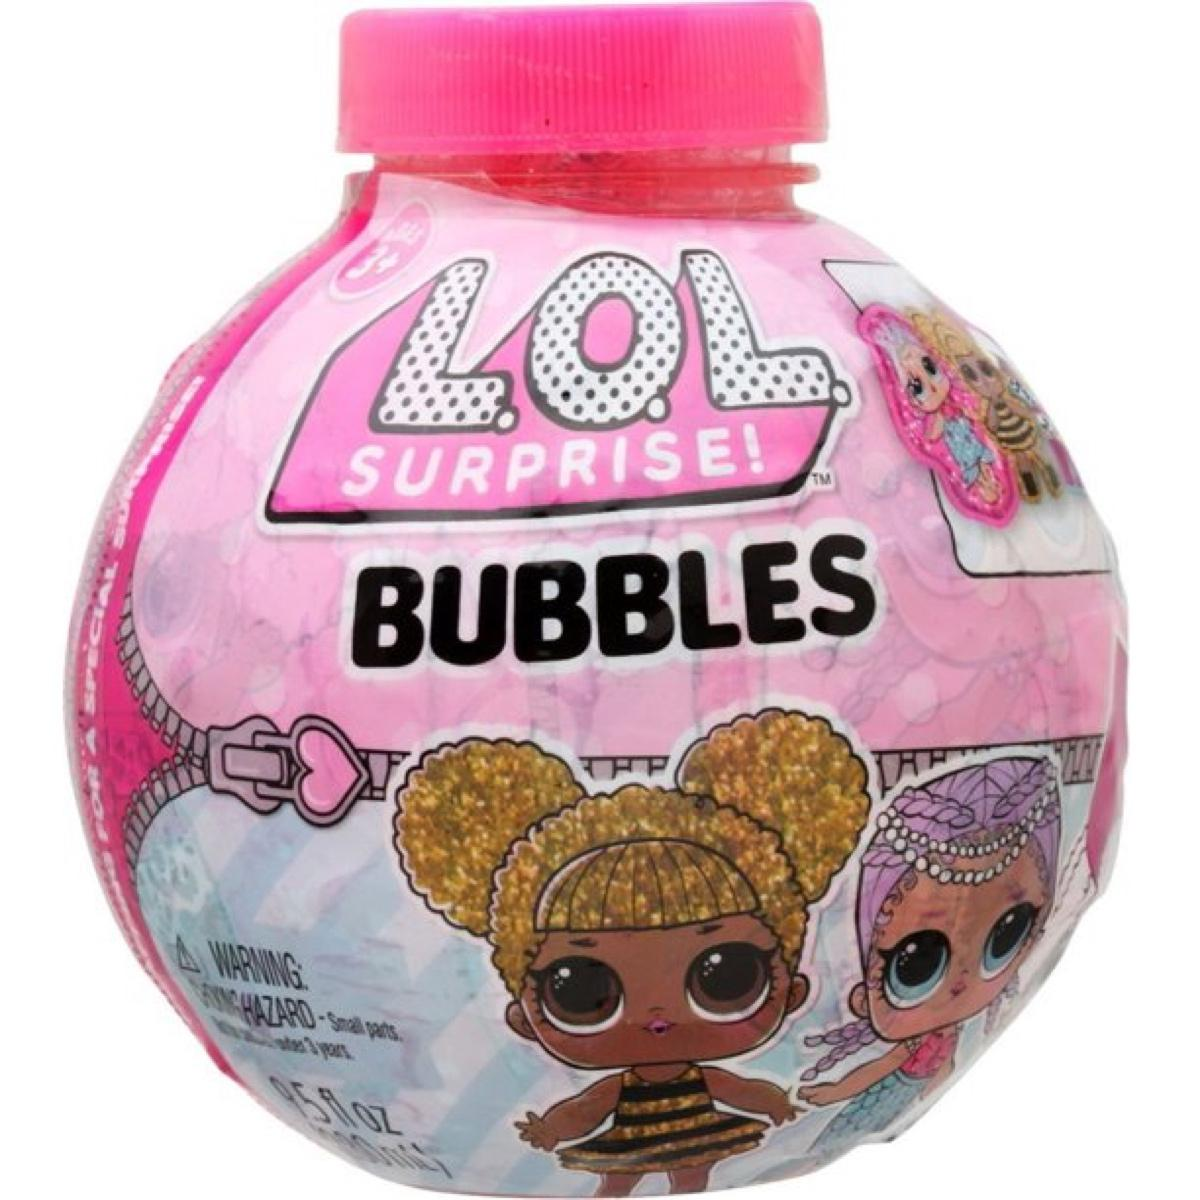 LOL Surprise Bubbles with Surprise Toy Inside